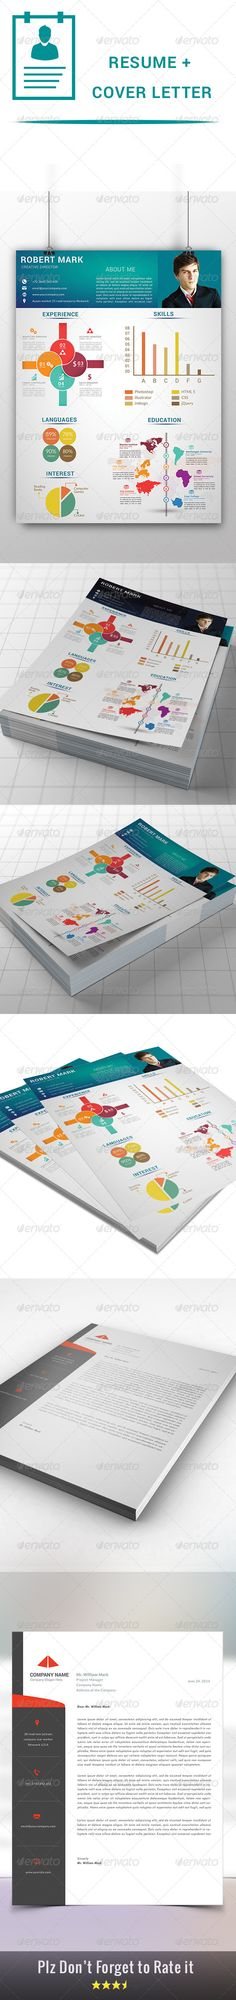 Modern Resume + Cover Letter on Behance Resume + Cover Letter - purpose of resume cover letter